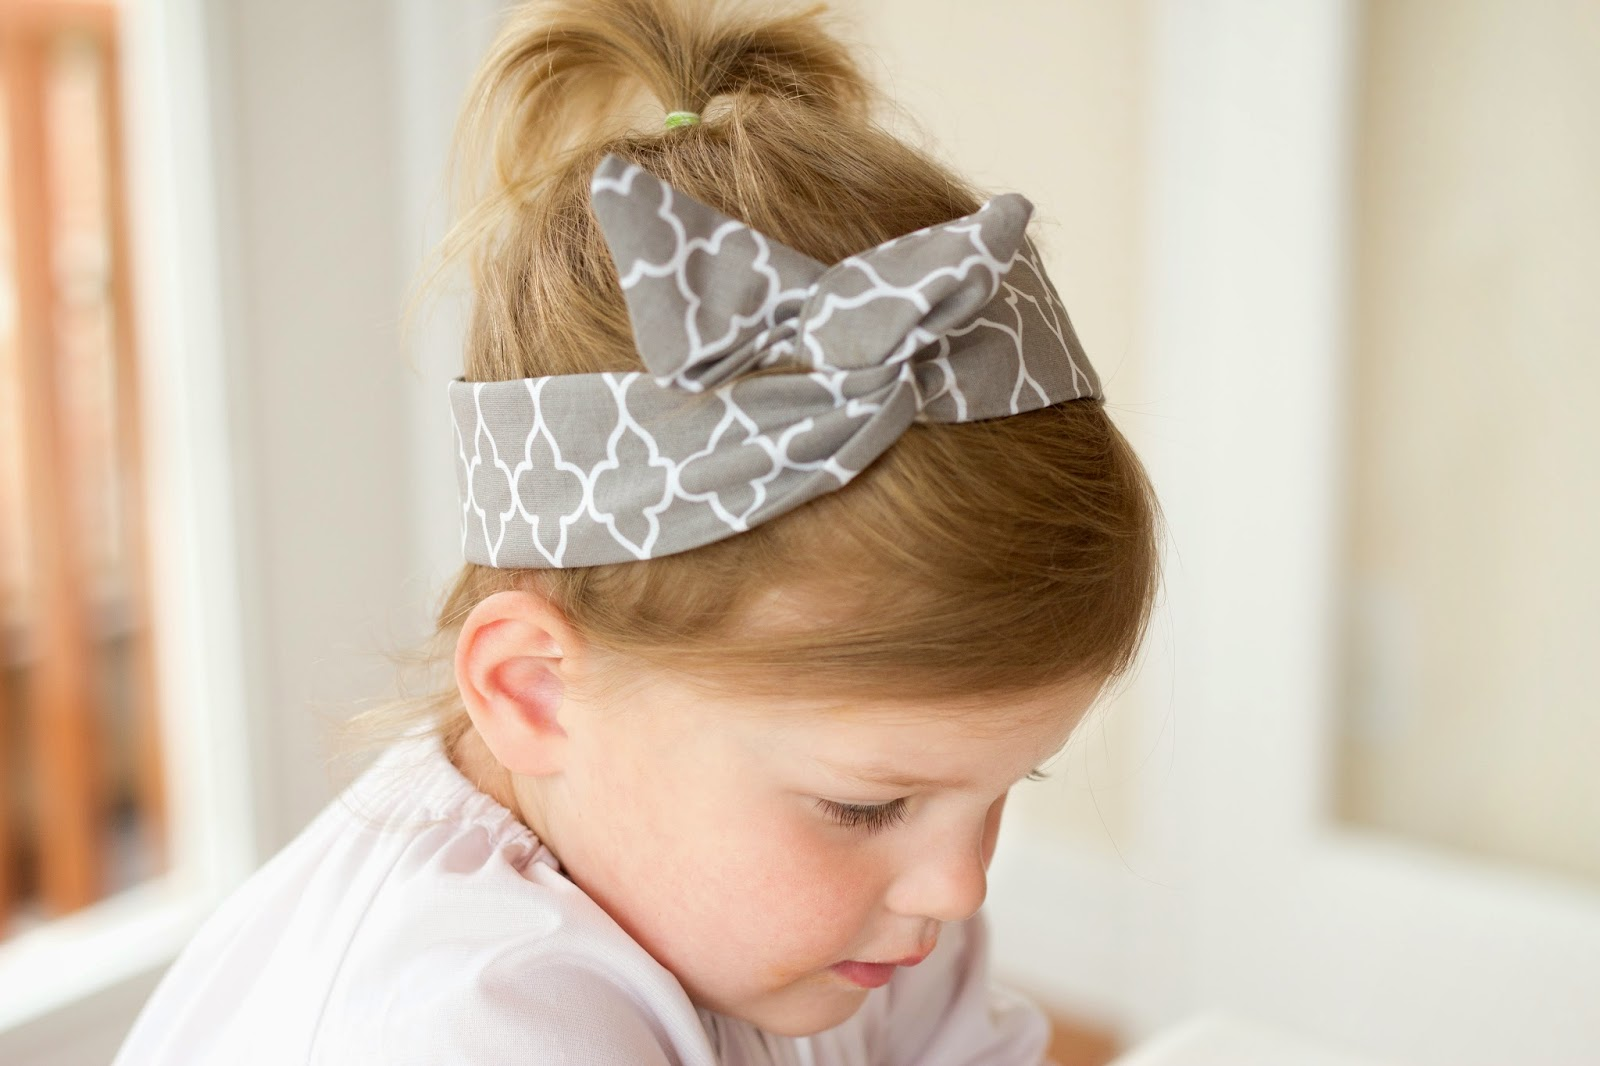 do it yourself divas: DIY Wire Headband